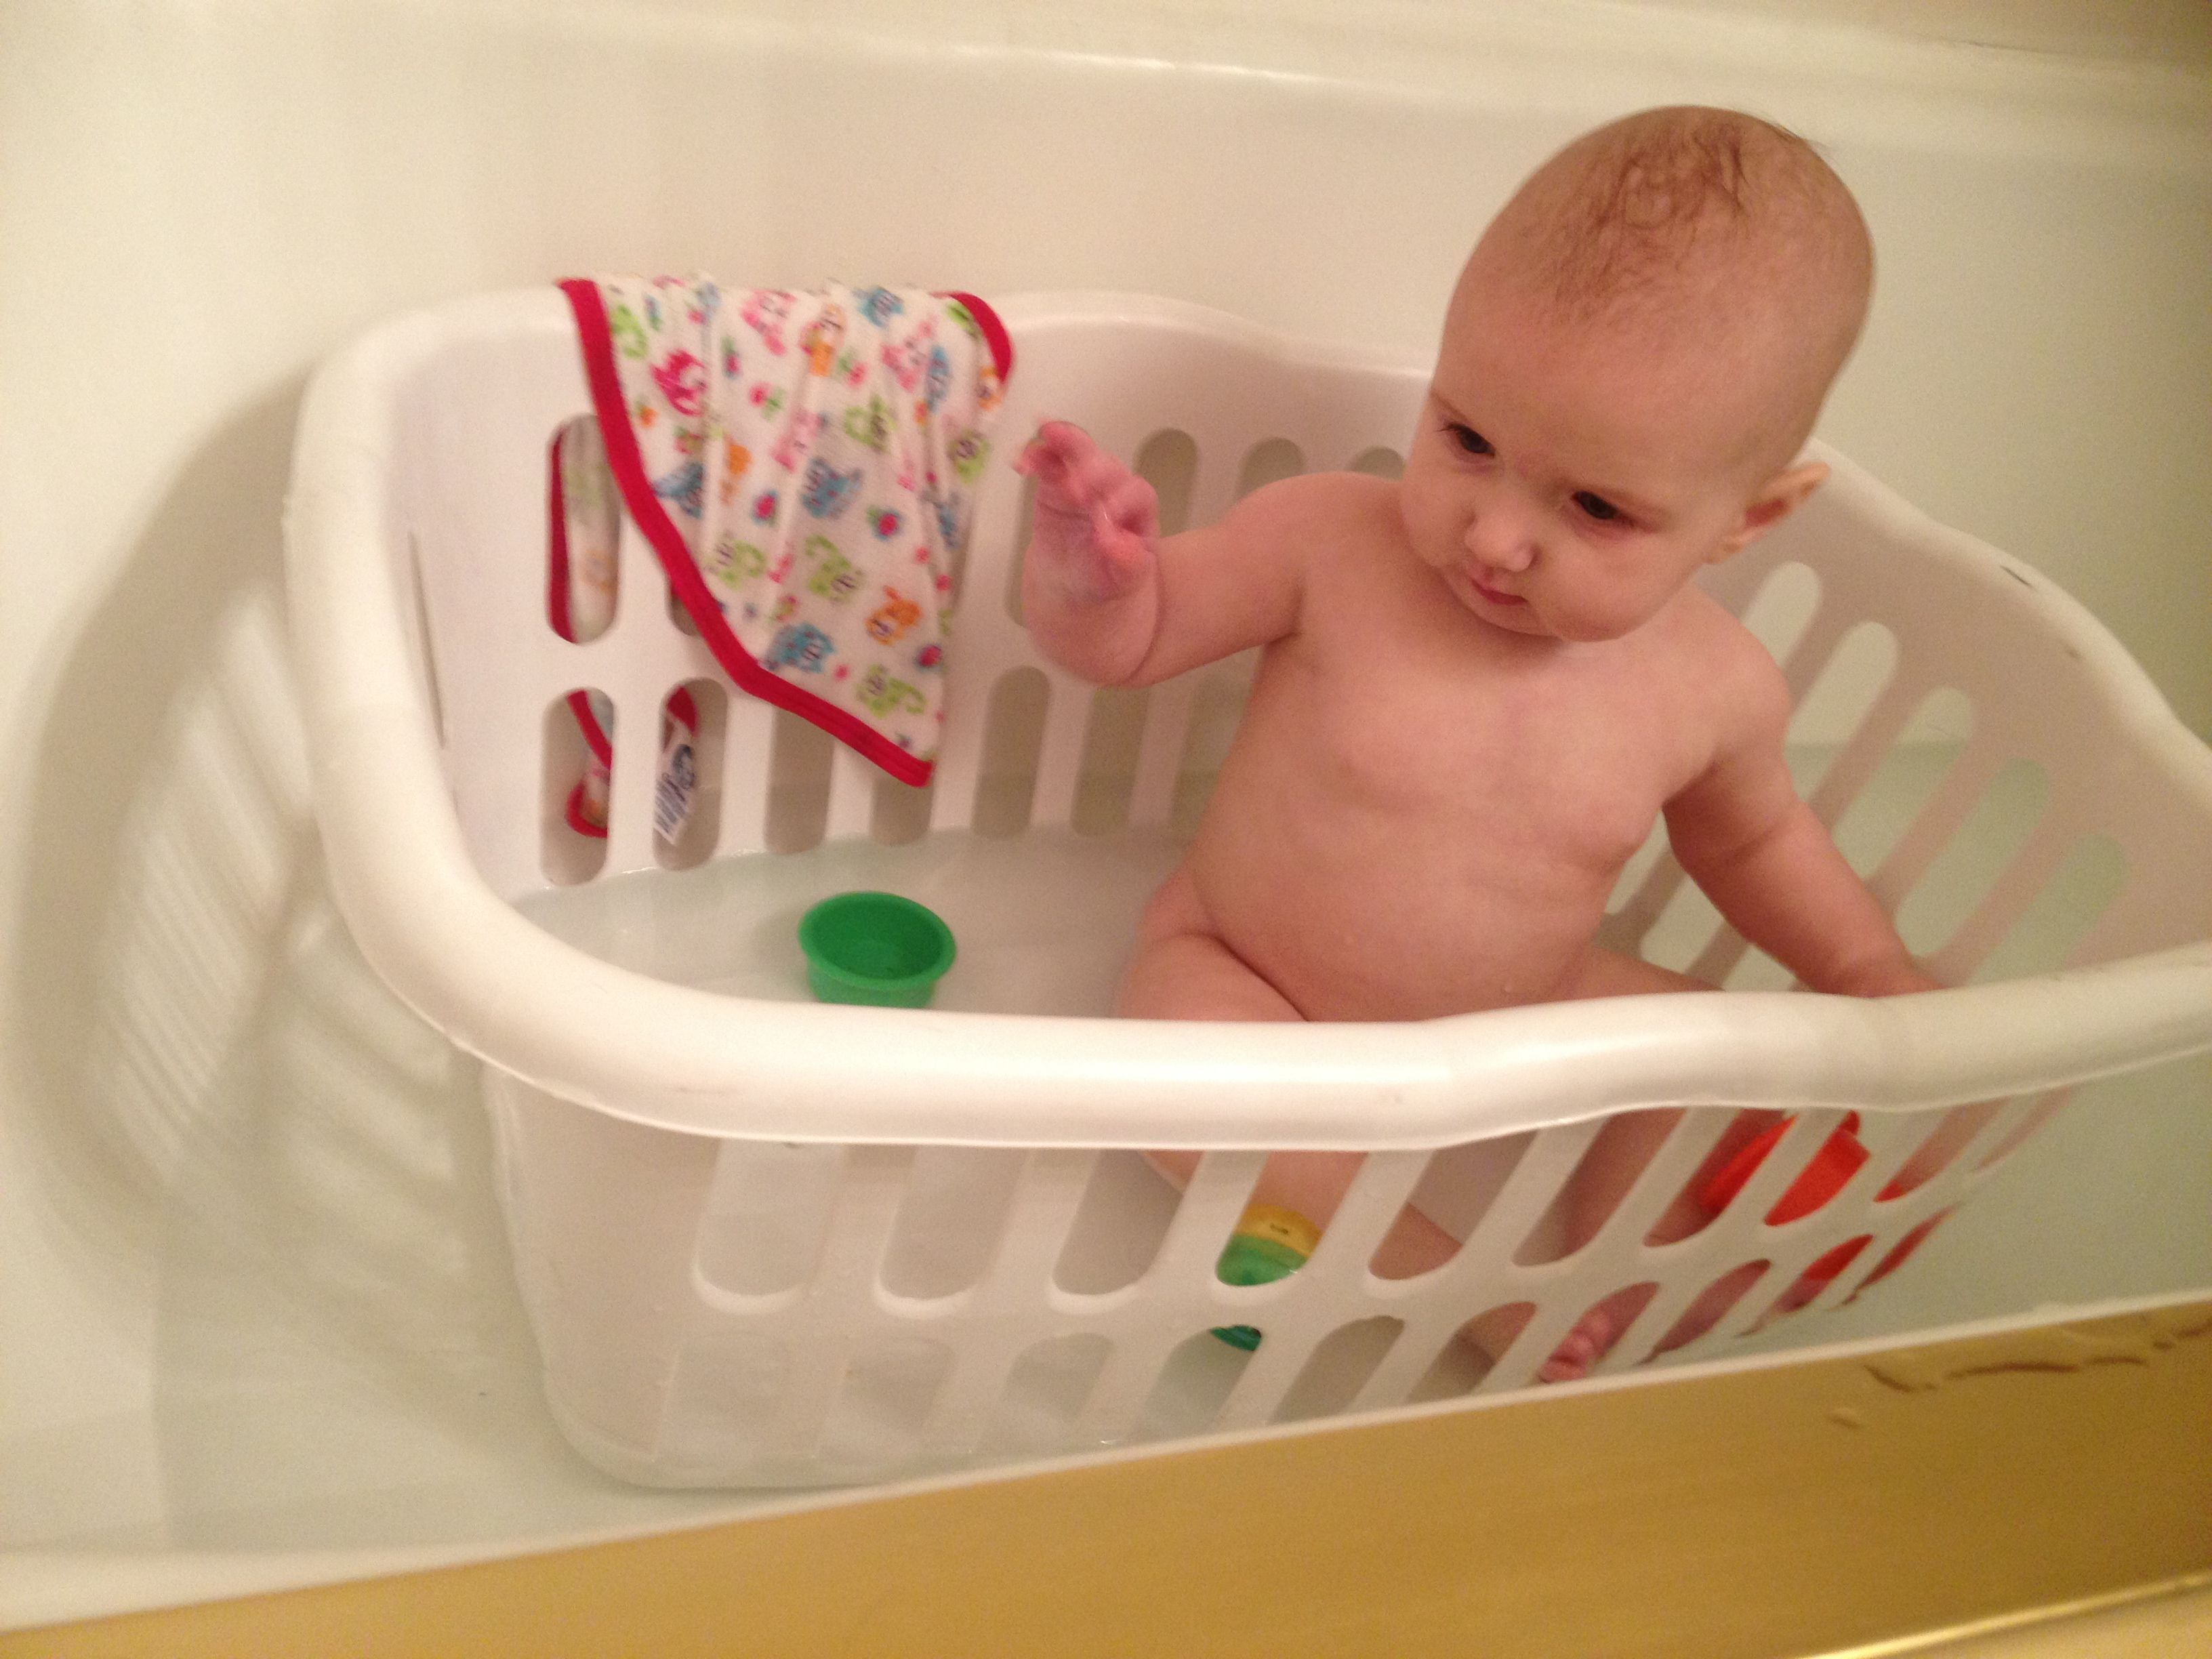 Baby Laundry Bin Use A Laundry Basket As A Nonslip Baby Bath Awesome Idea